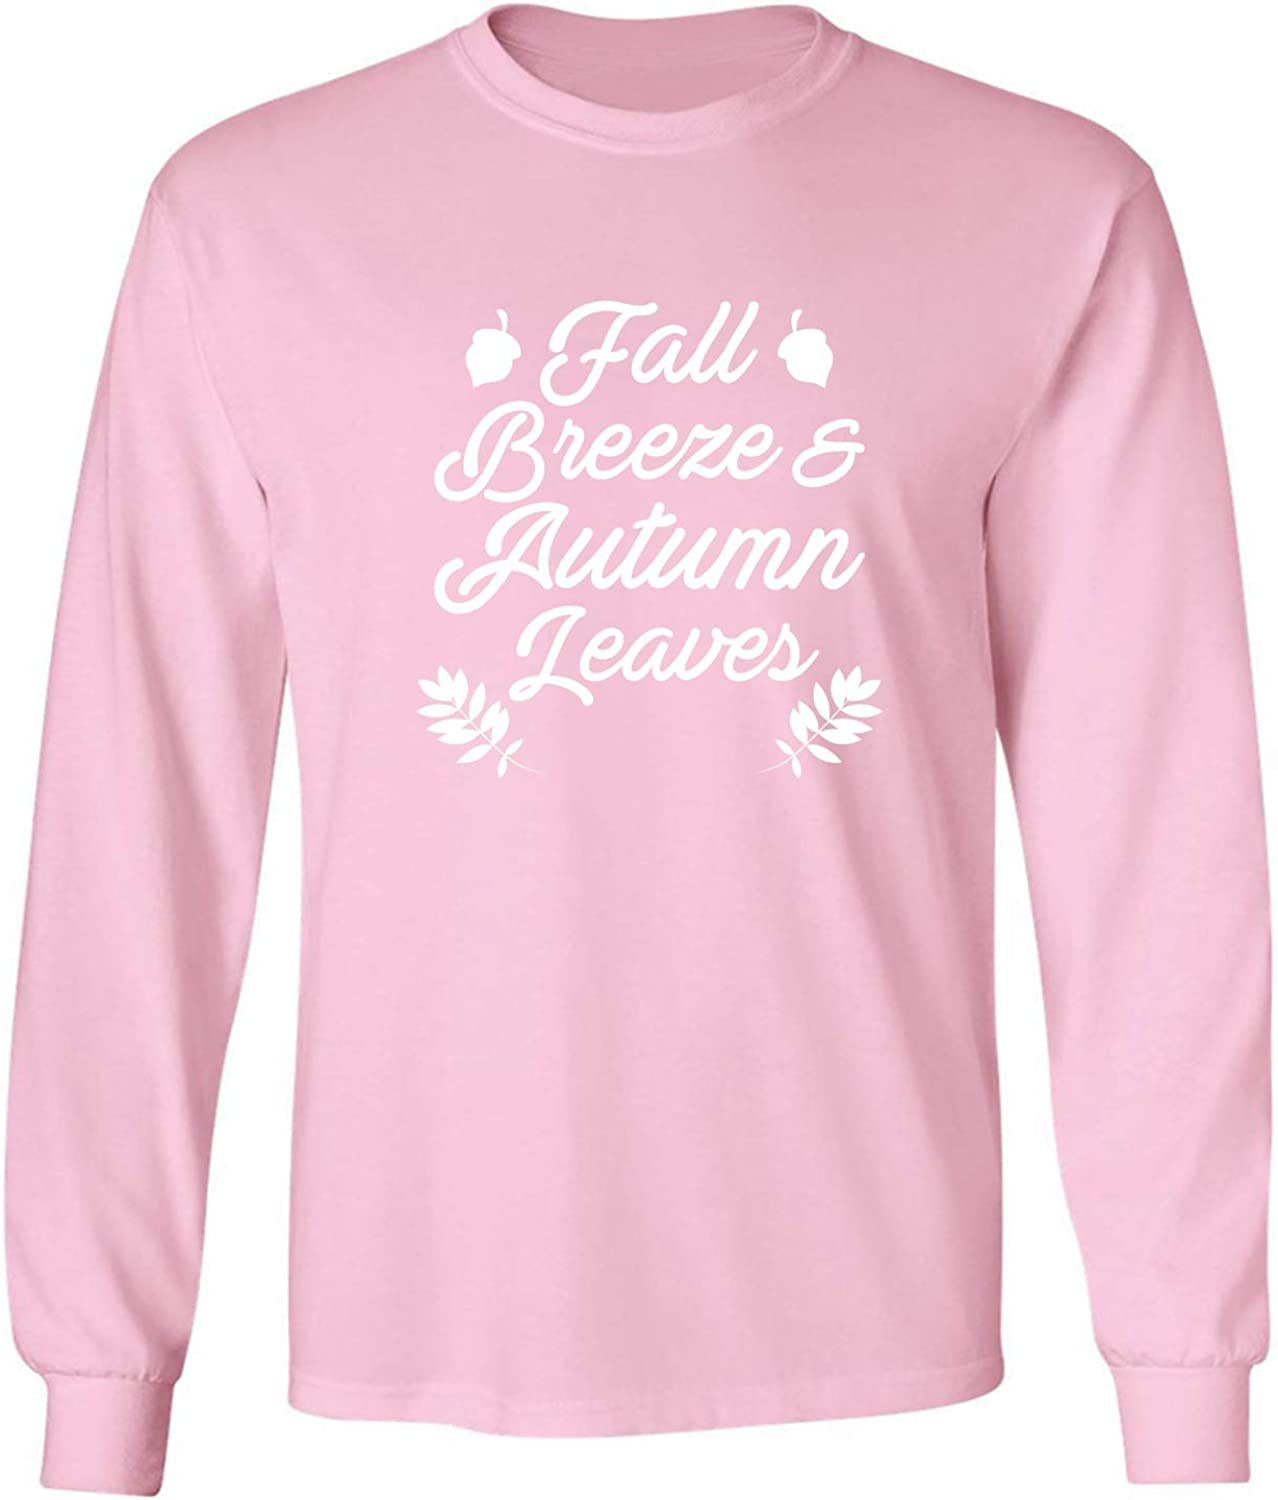 Fall Breeze & Autumn Leaves Adult Long Sleeve T-Shirt in Pink - XXXX-Large